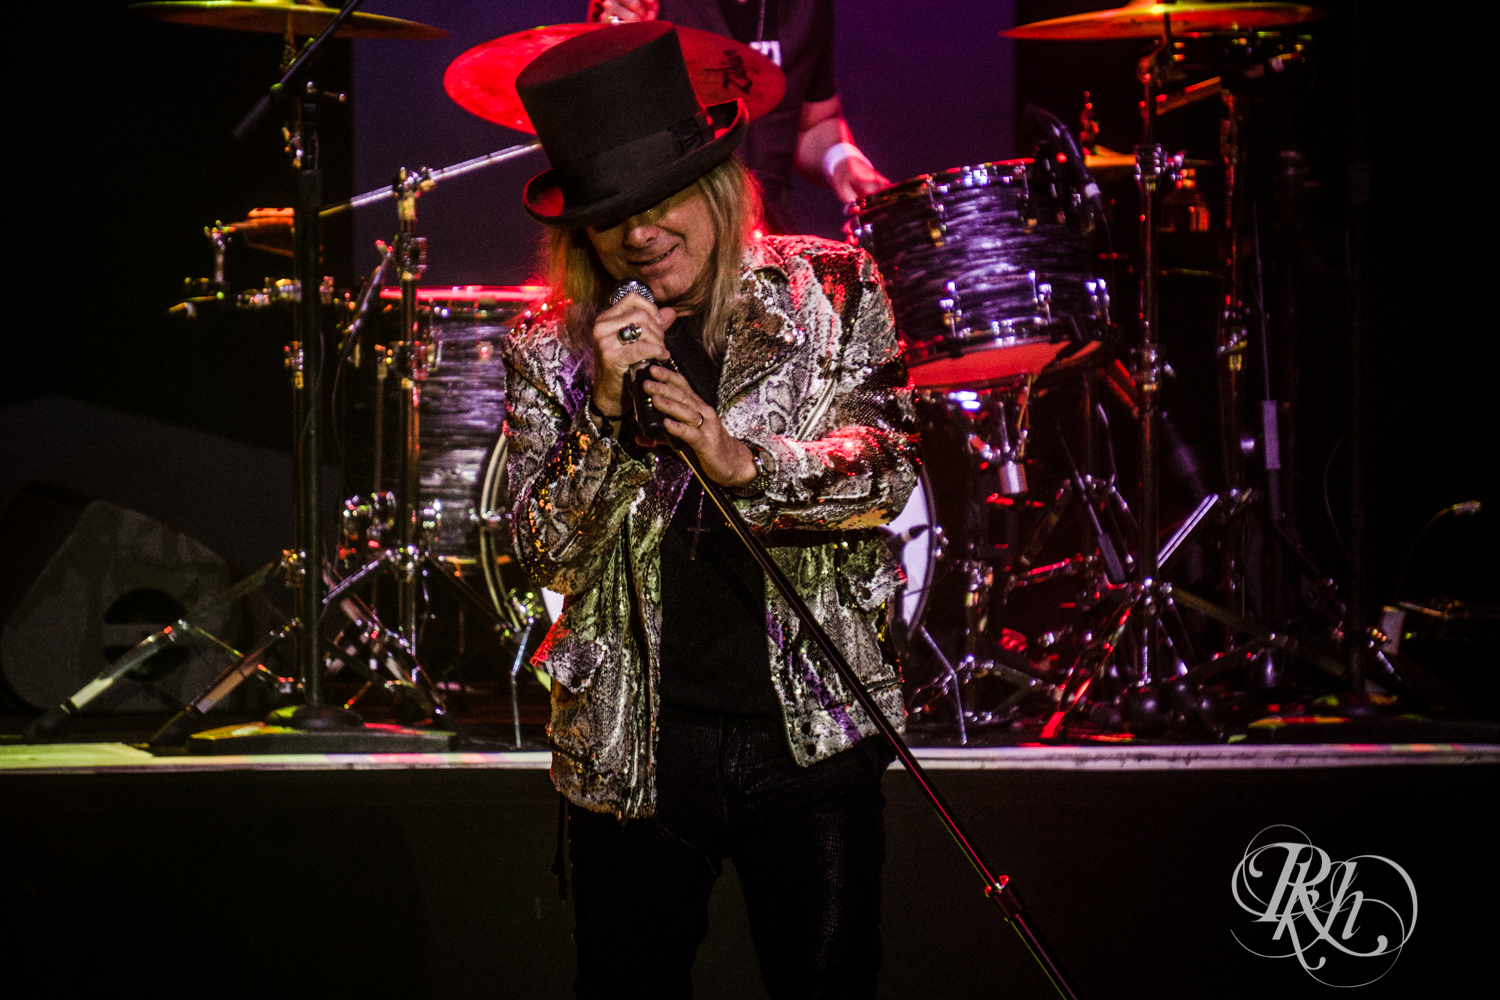 Cheap Trick - Mystic Lake Casino - RKH Images  (14 of 15).jpg